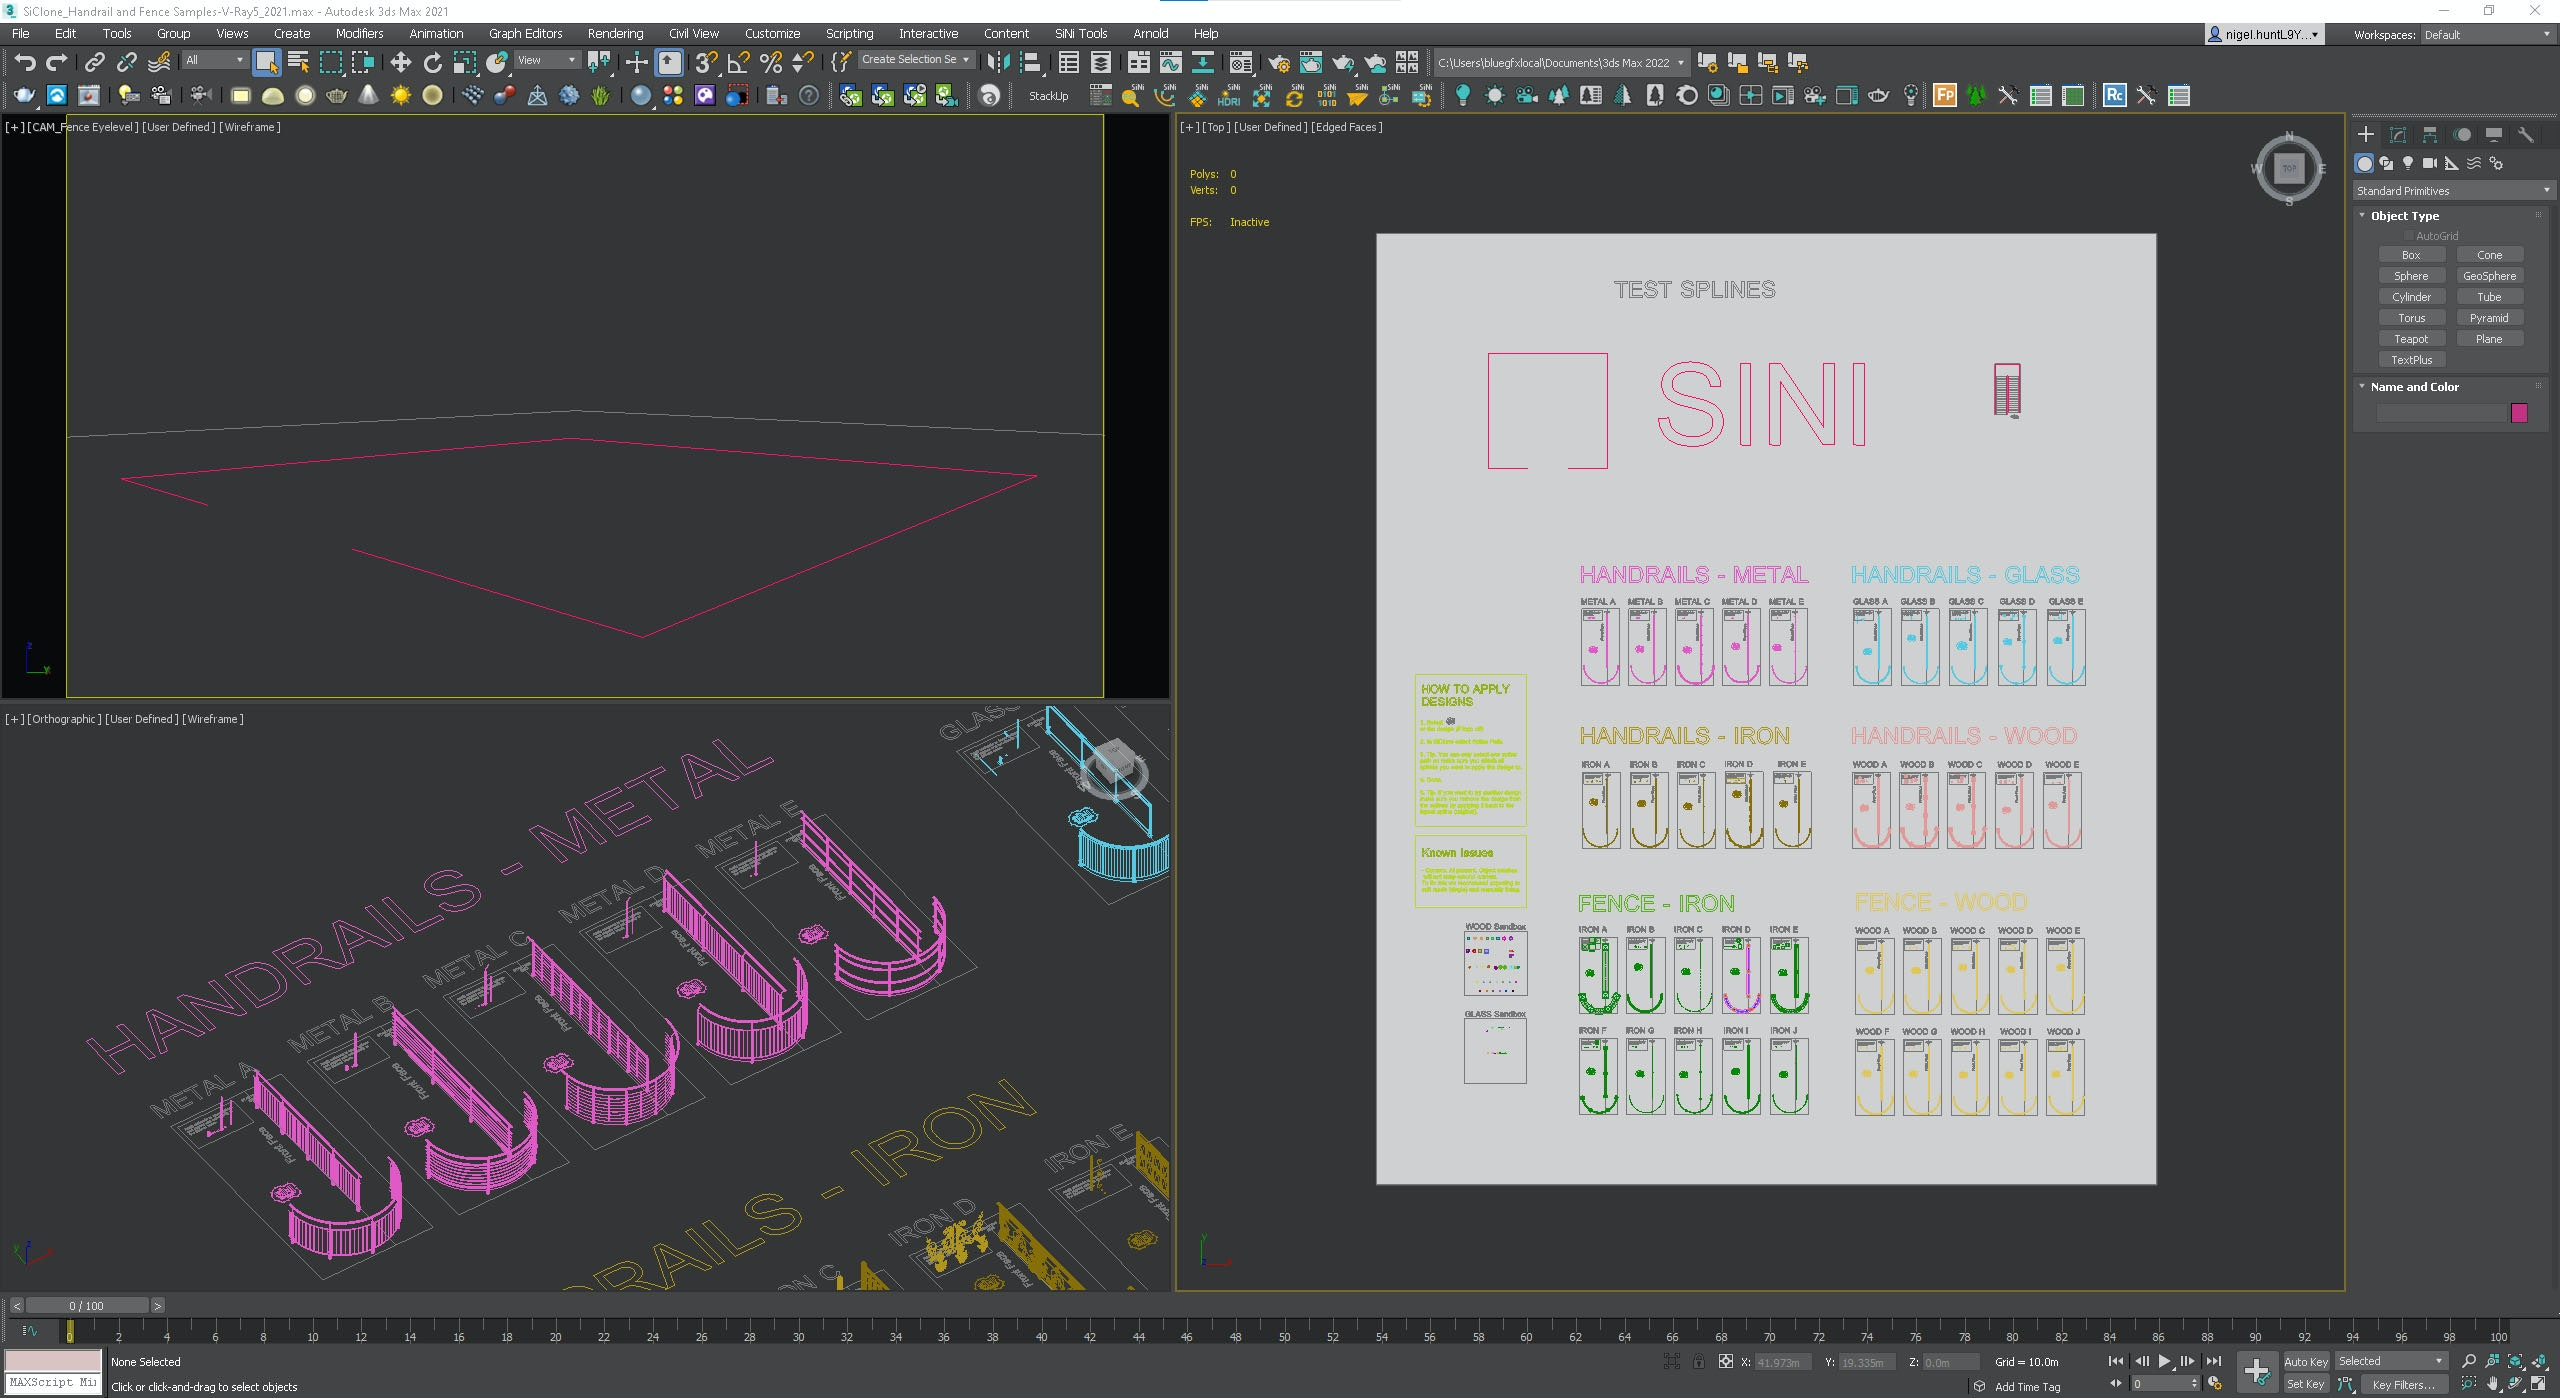 3ds Max 2021 - System/Scene units = Meters.